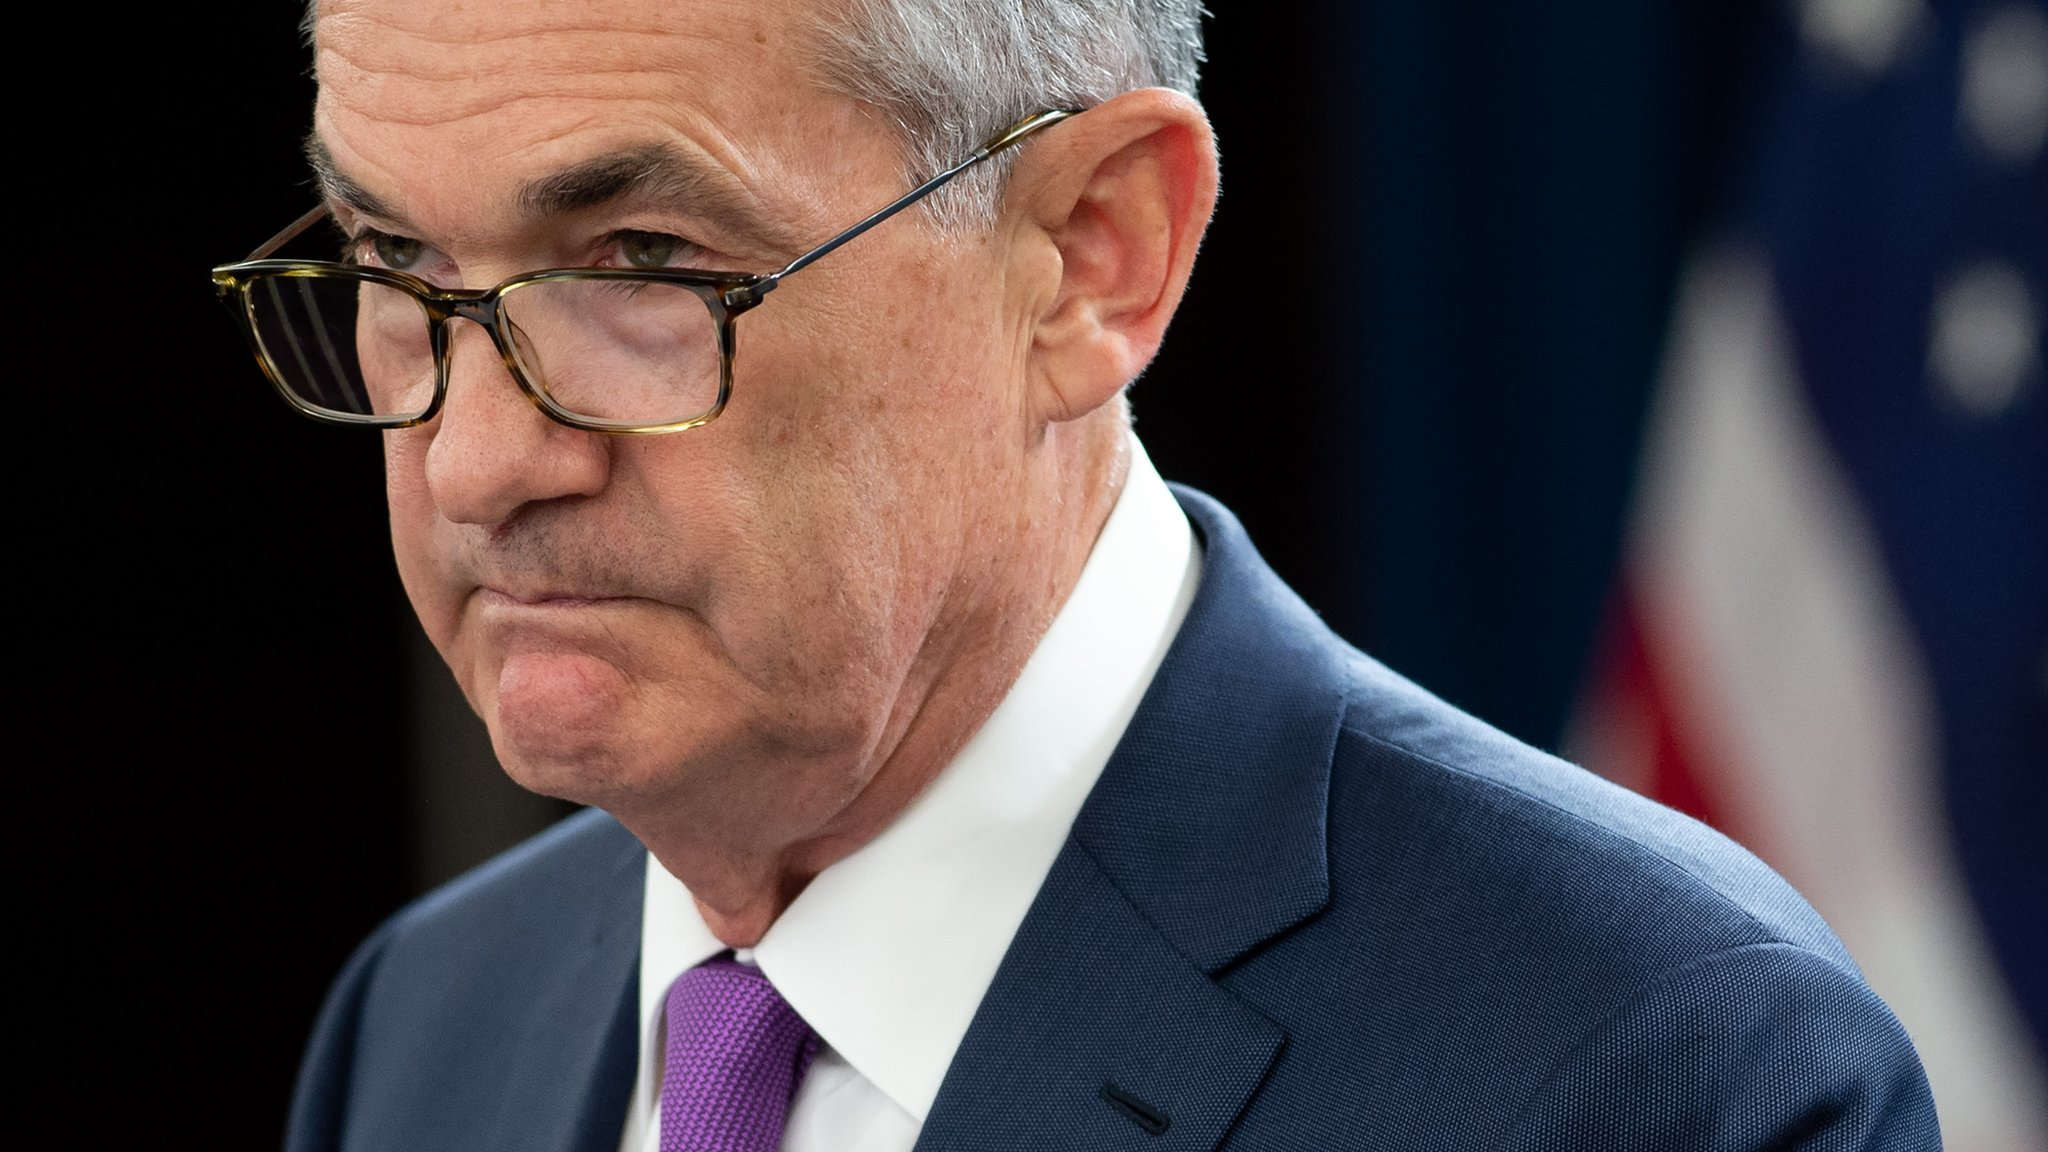 Fed raises rates but cuts 2019 forecast